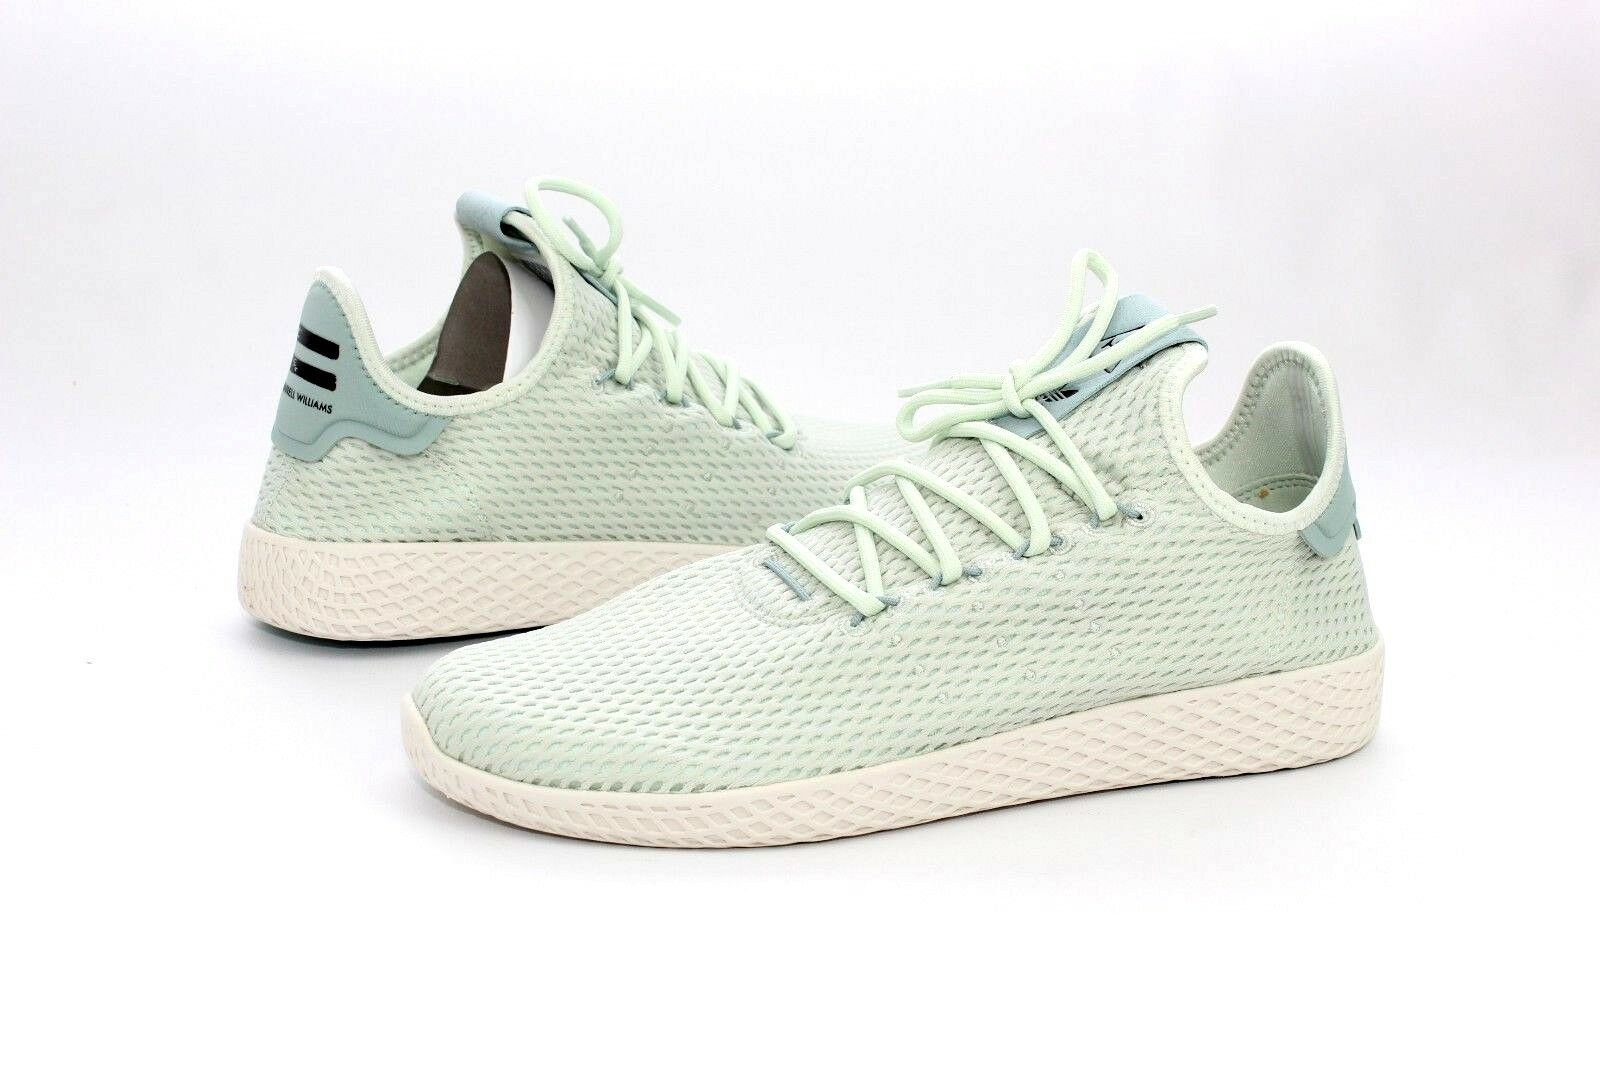 Adidas Pharrell Williams PW Tennis HU Linen Green Tactile Mens Size 9 US CP9765